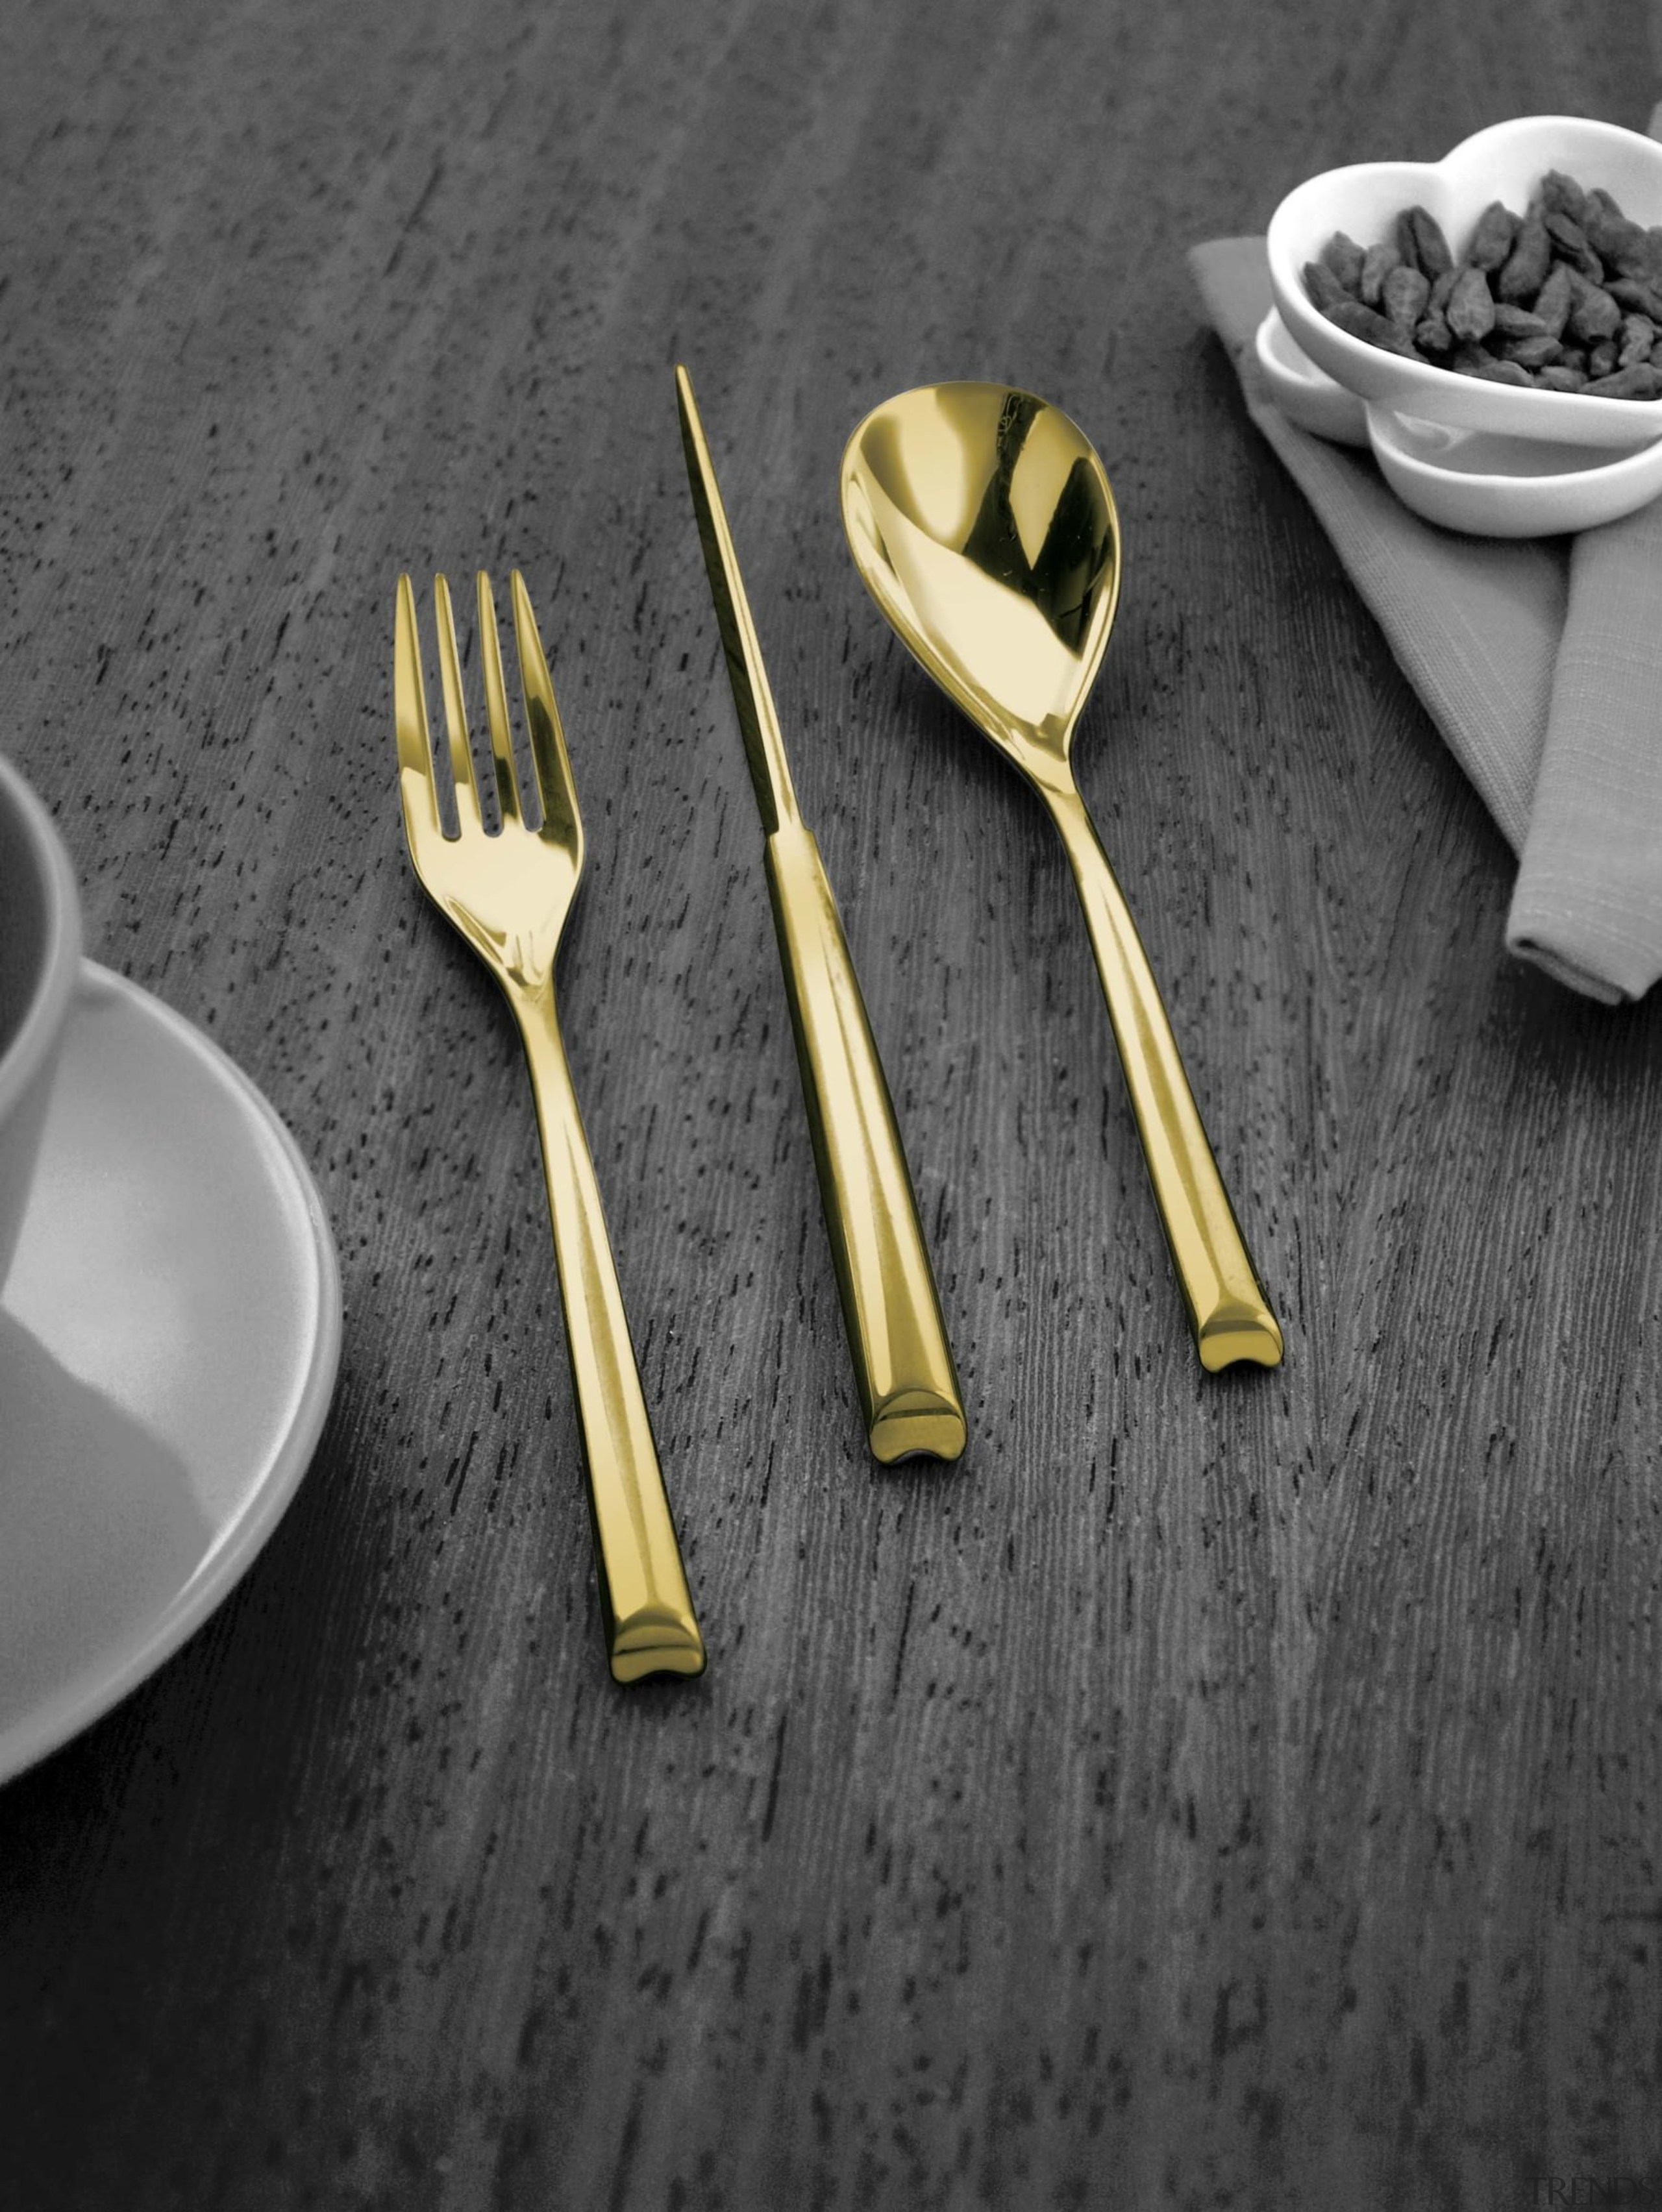 A selection from The Studio of Tableware - cutlery, fork, product, spoon, tableware, black, gray